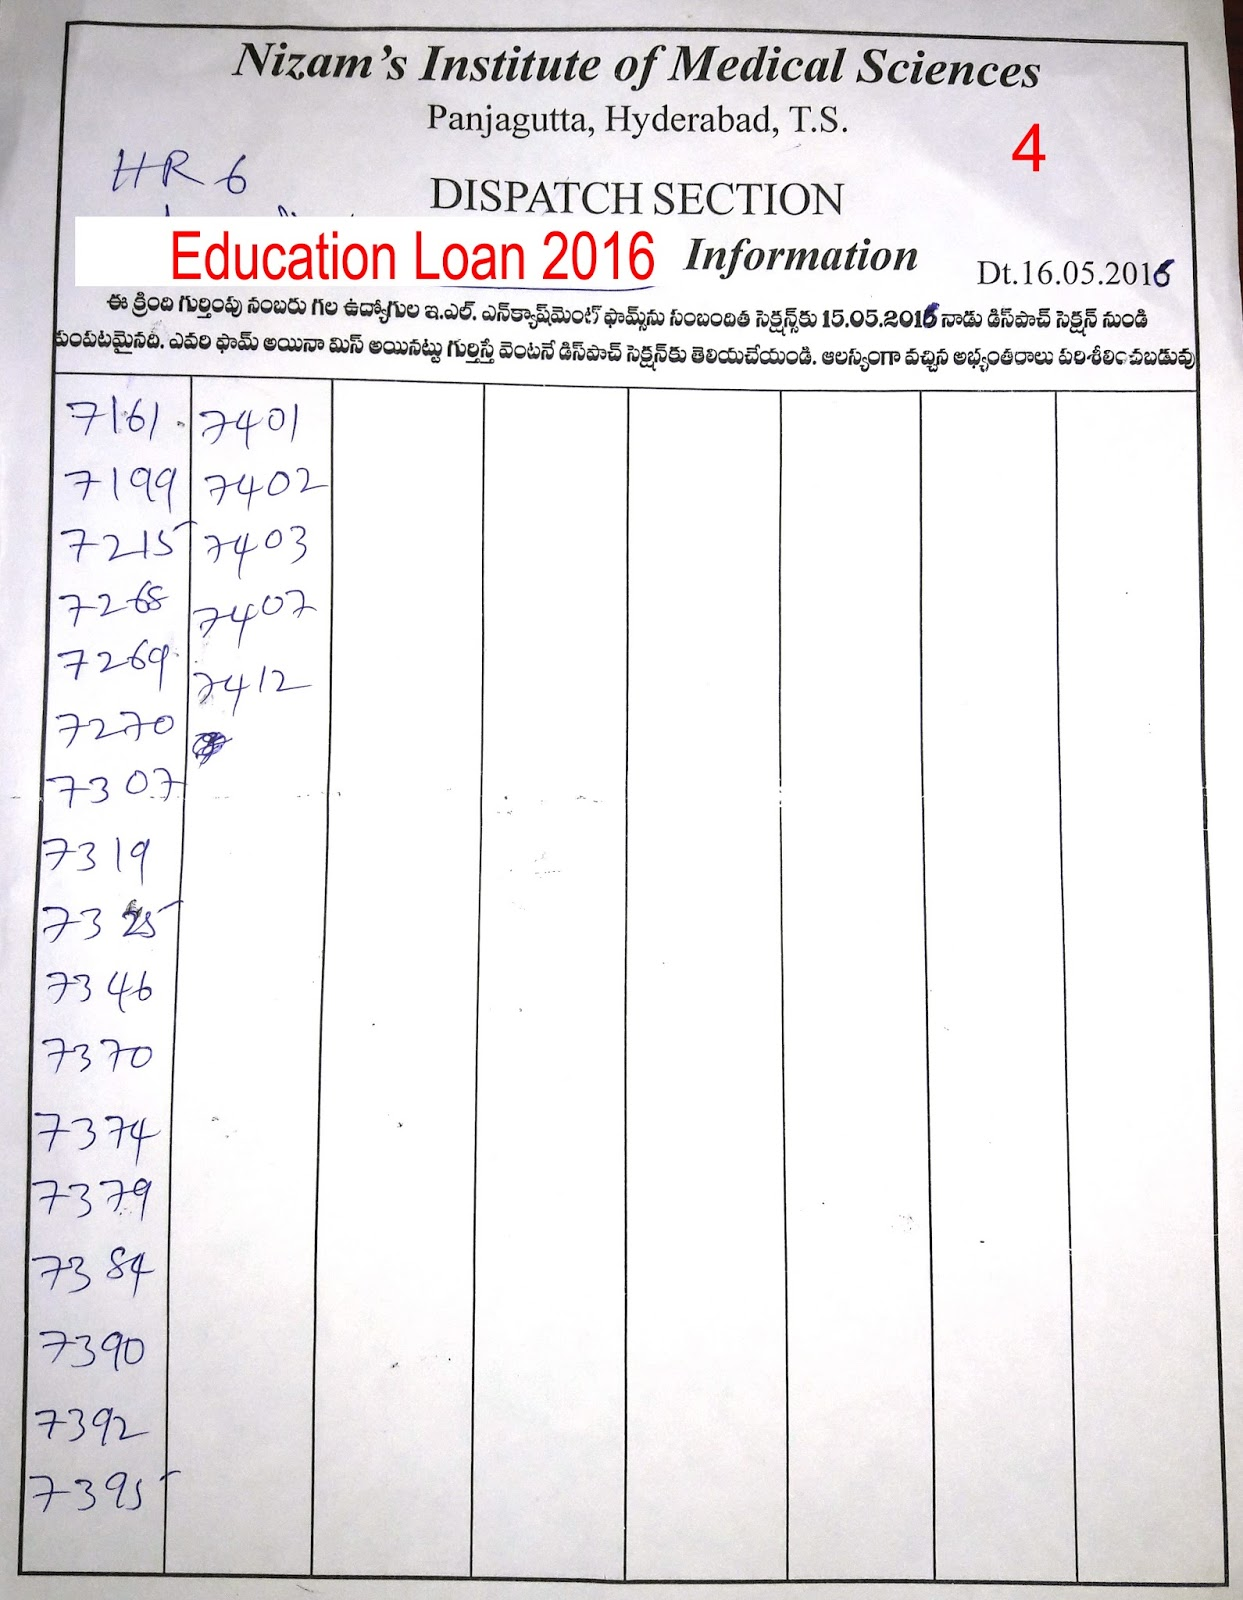 Nimsgosc Posted By Srihari Rao On Thursday January 6 2011 5comments The List Of Employees Who Applied For El Encashment And Education Advance Year 2016 If Anybodys Application Found Misplaced Please Inform